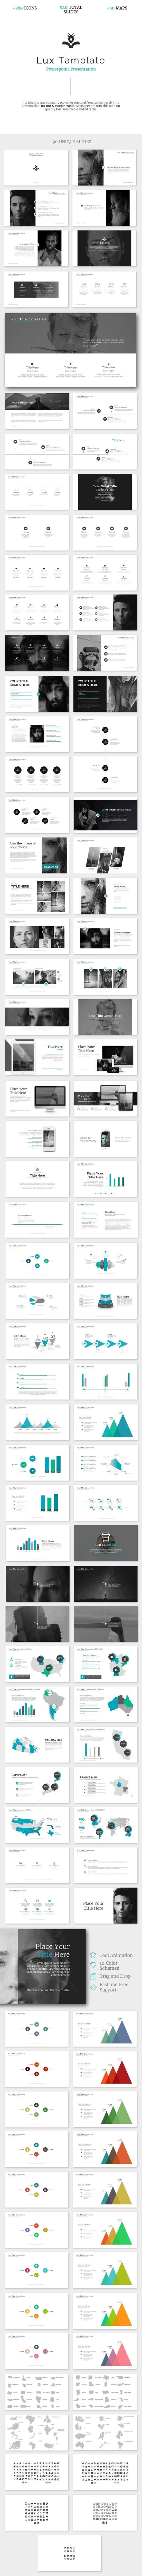 Lux - Powerpoint Template